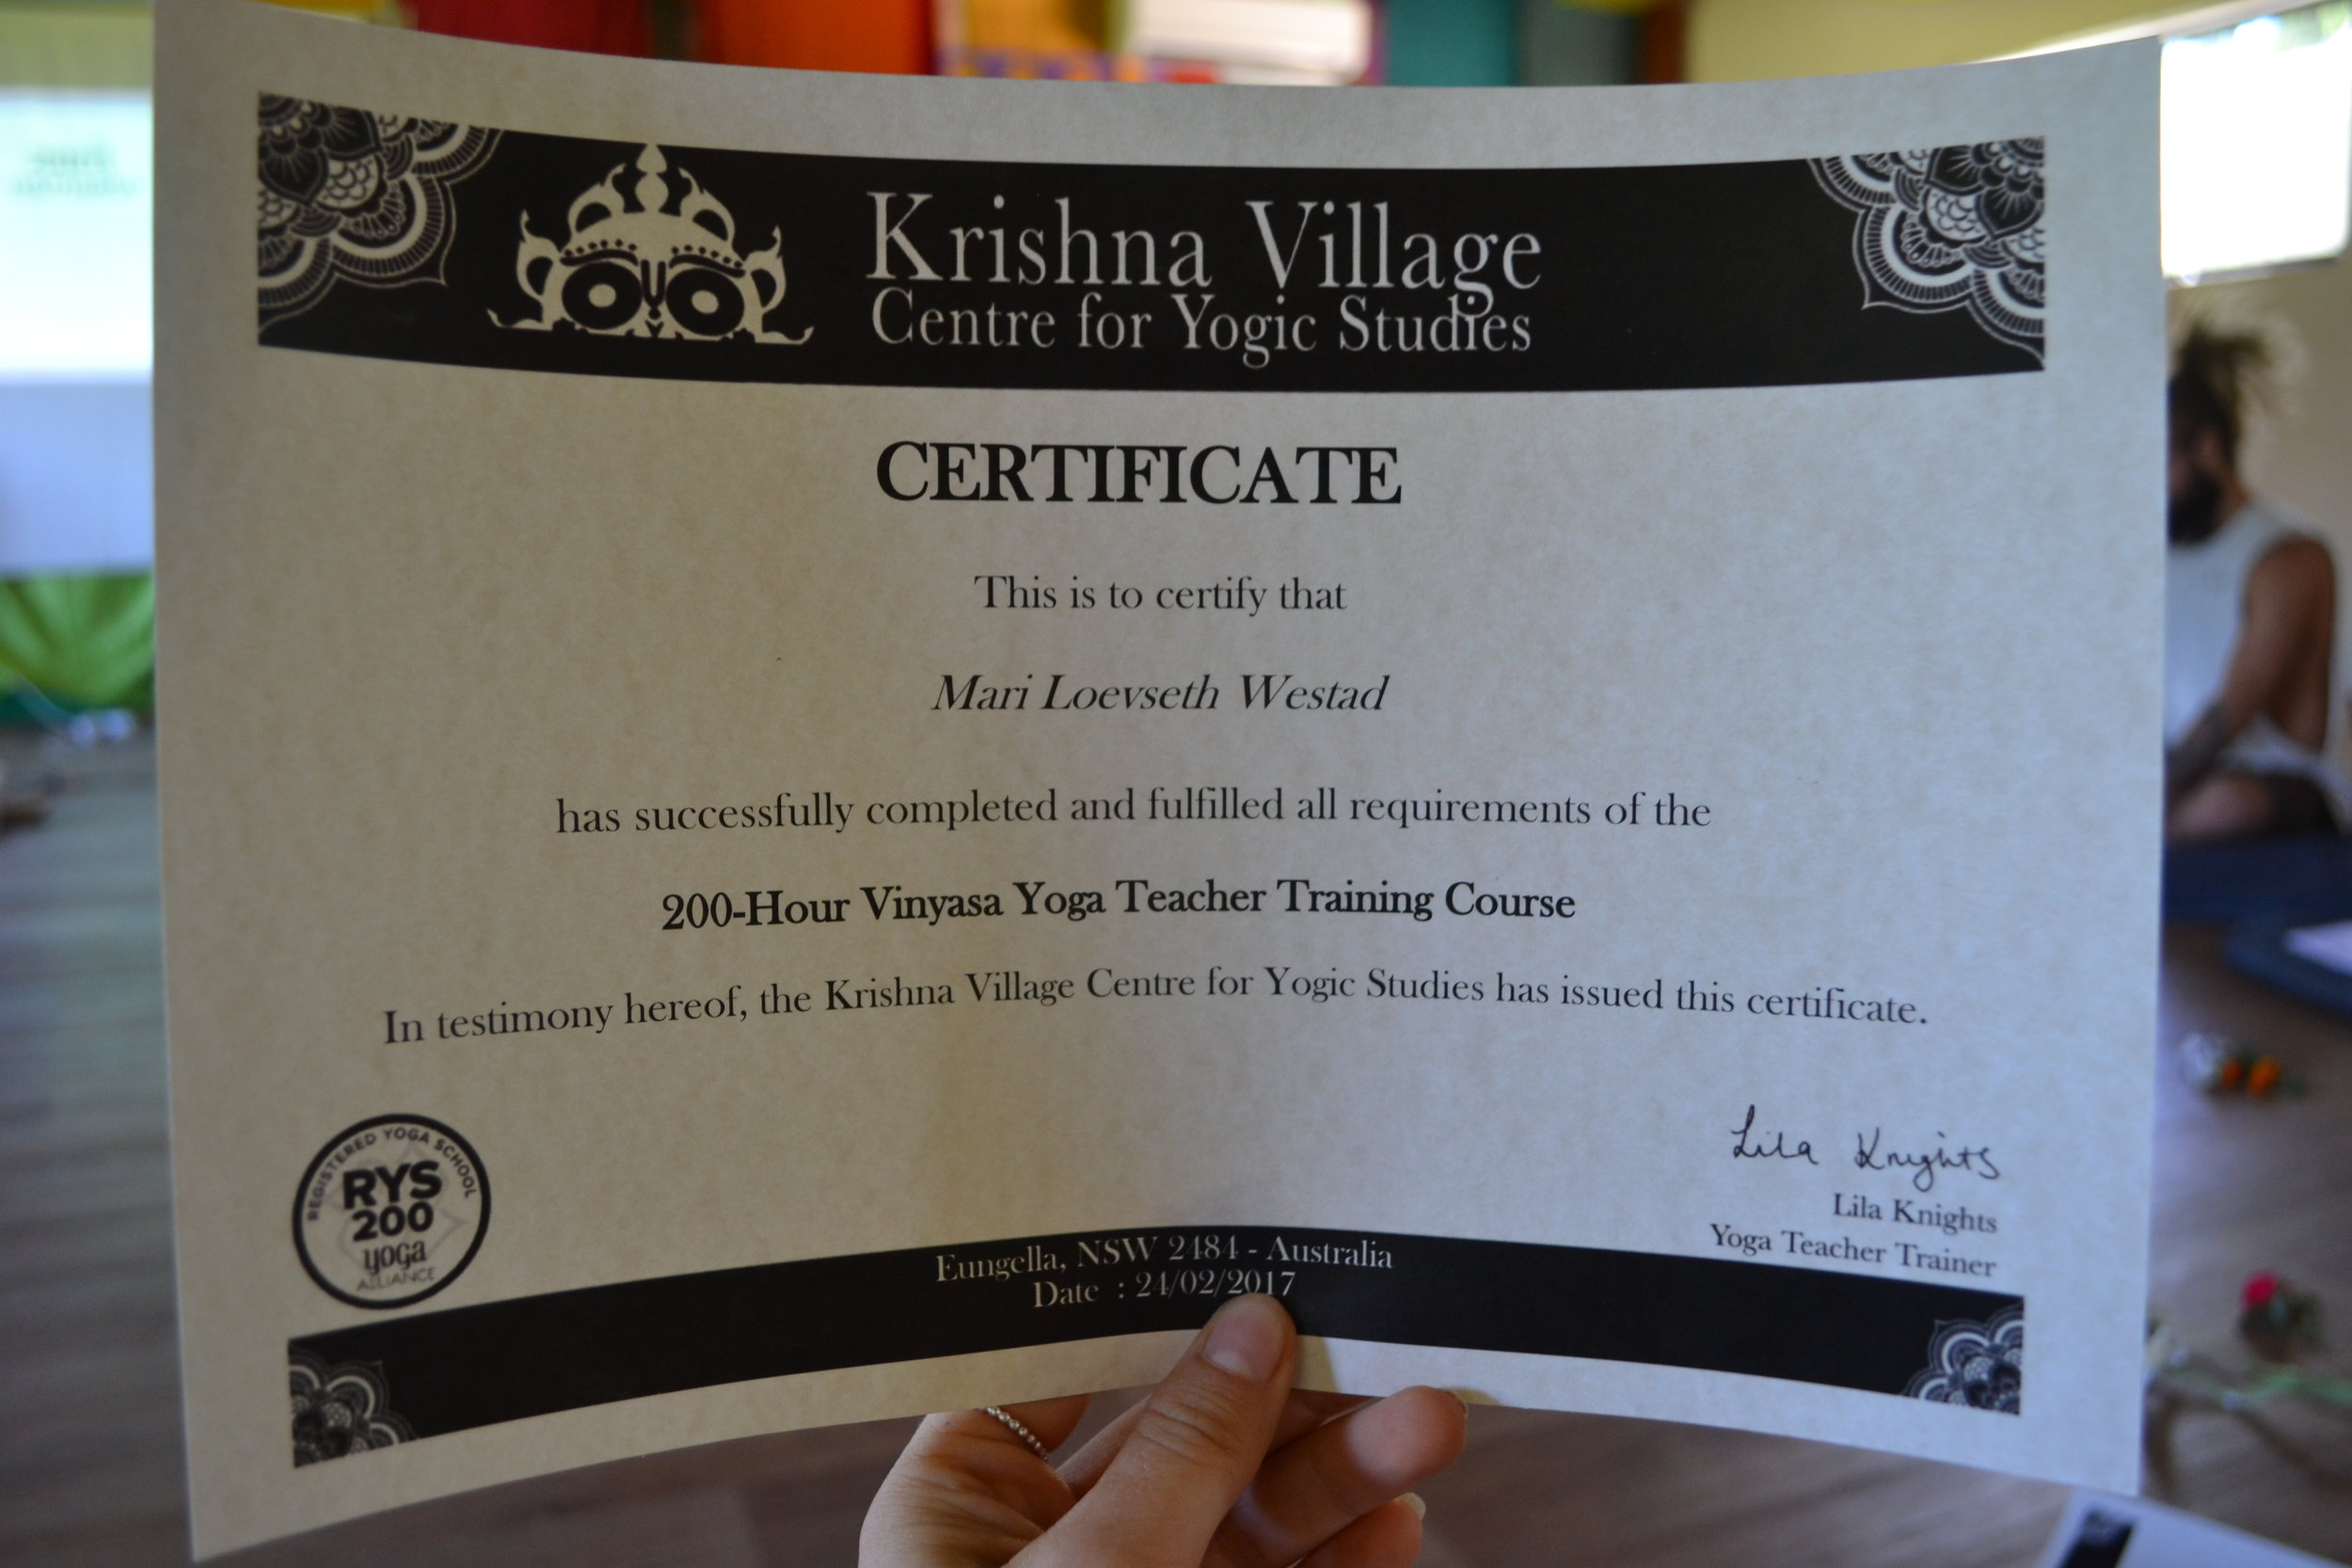 It's all in writing; I am now officially a certified yoga teacher. What a blessing to work doing something I love!